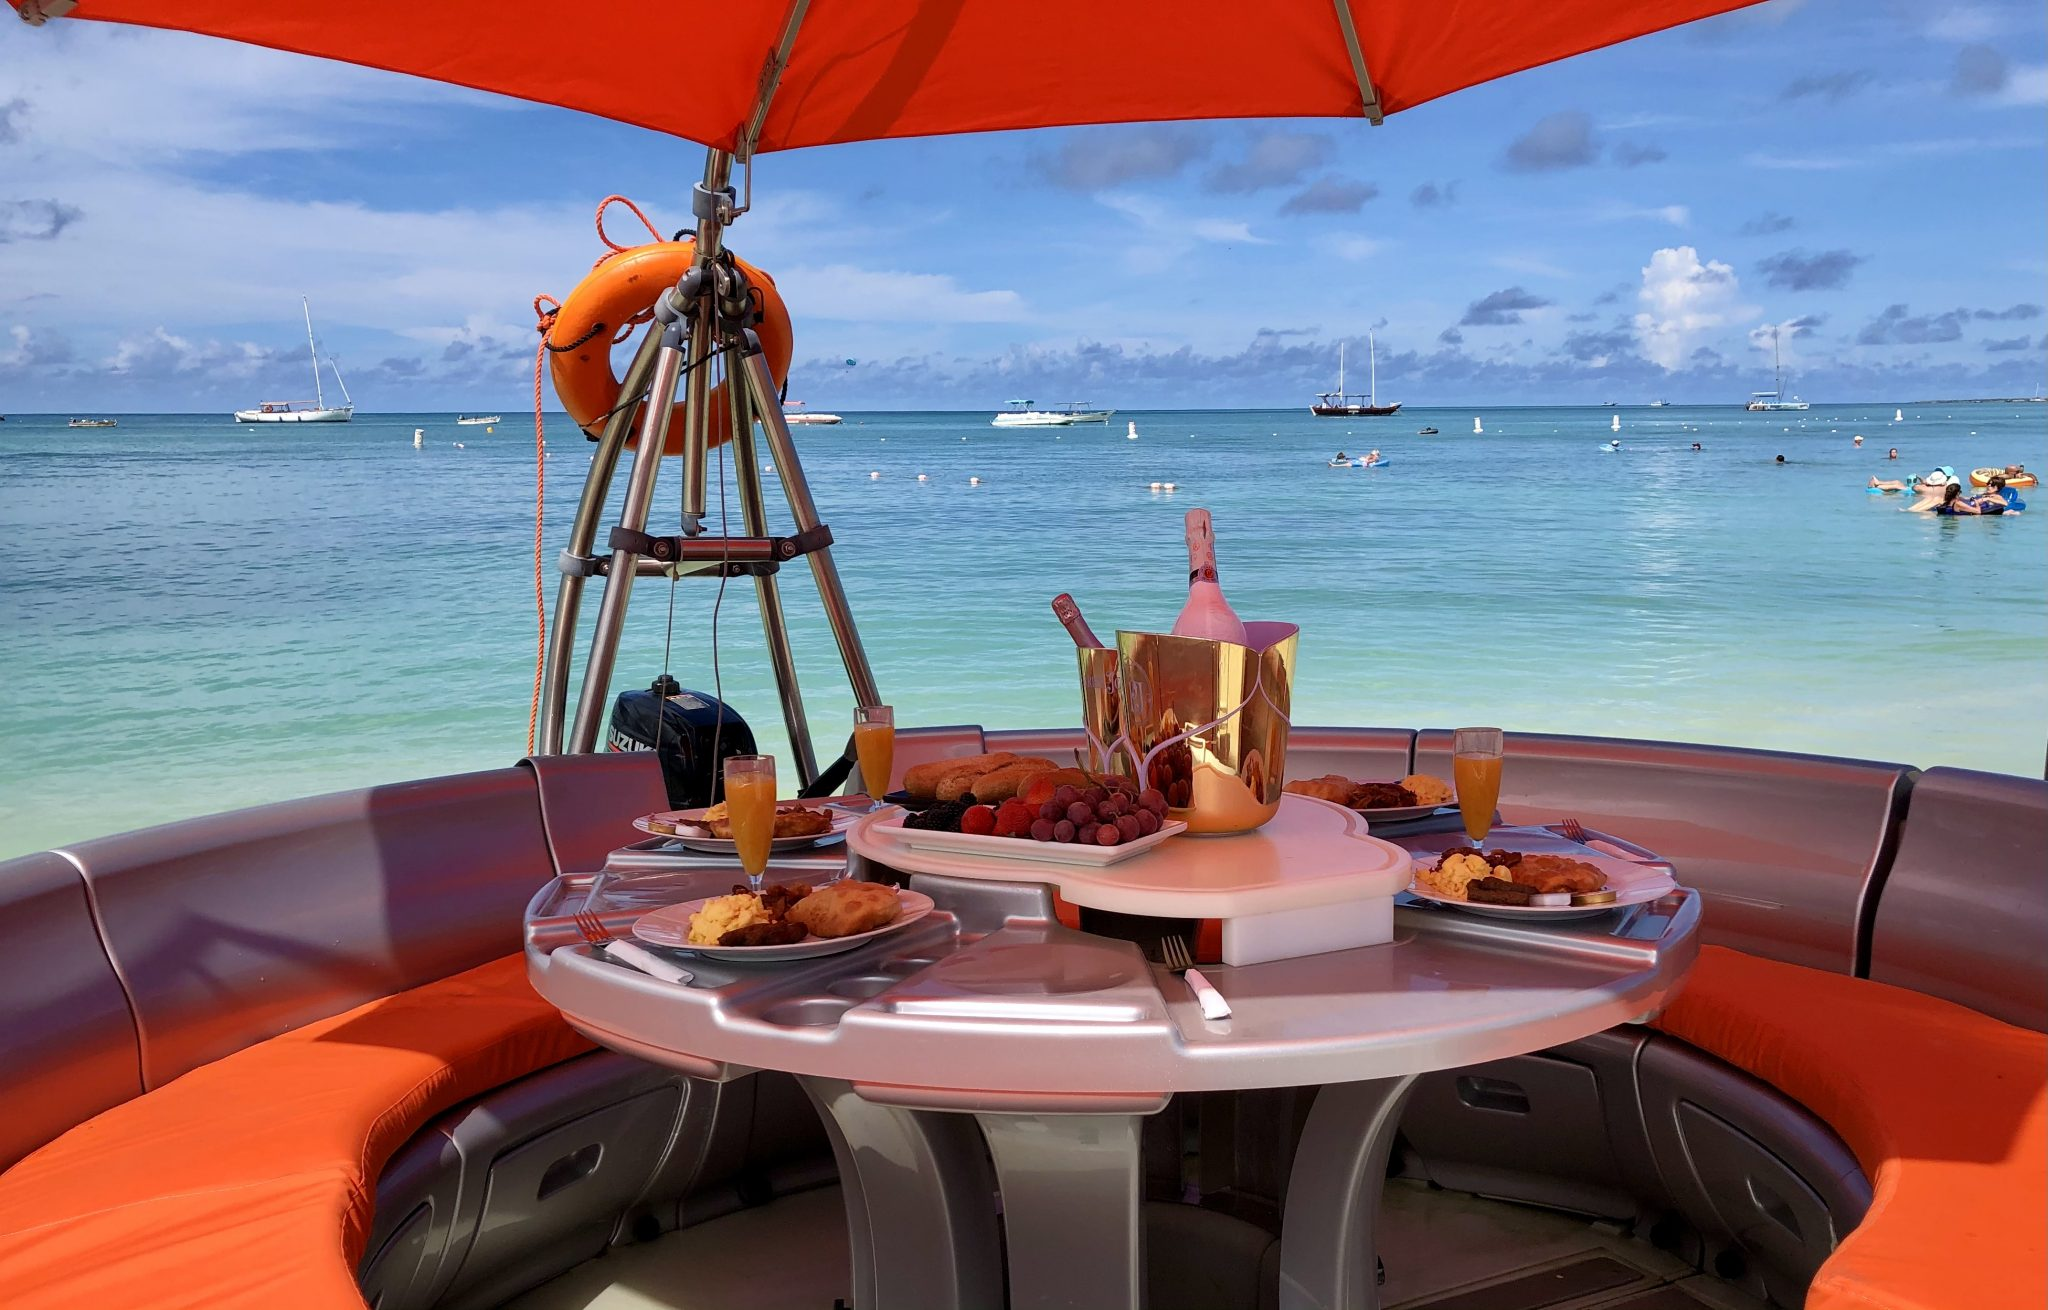 Brunch on the Caribbean sea